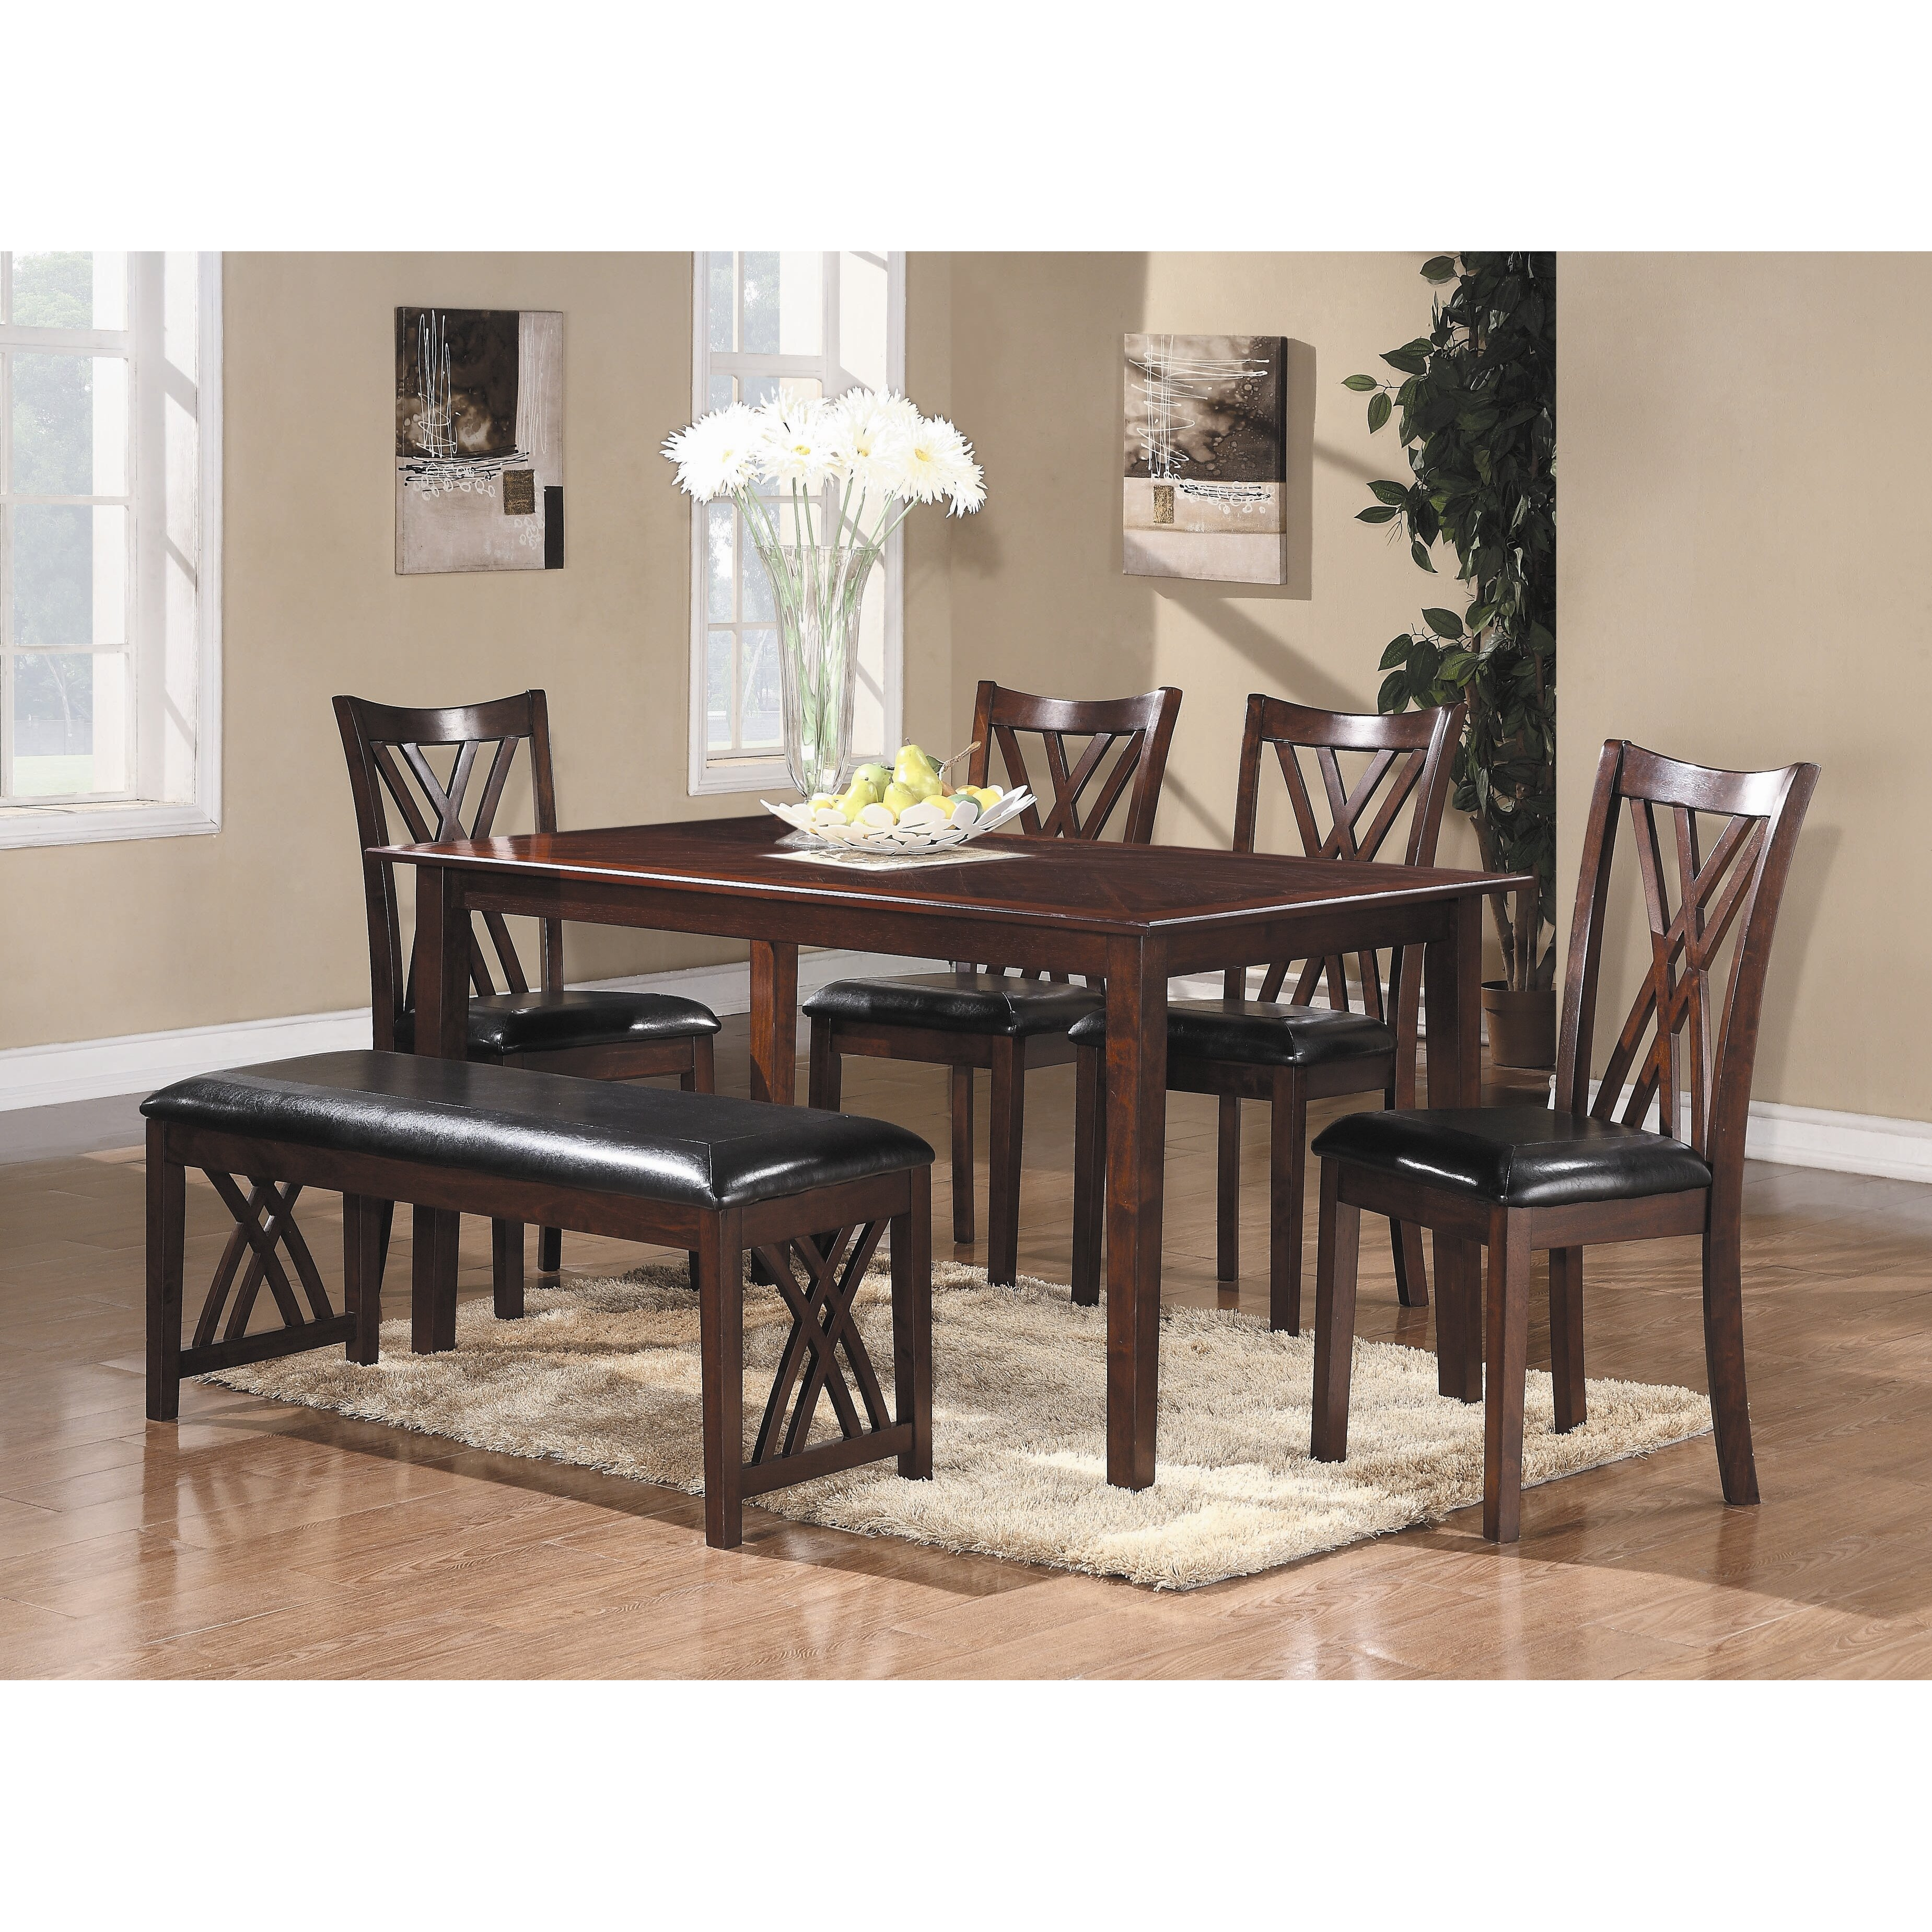 Woodhaven Hill Brooksville 6 Piece Dining Set & Reviews